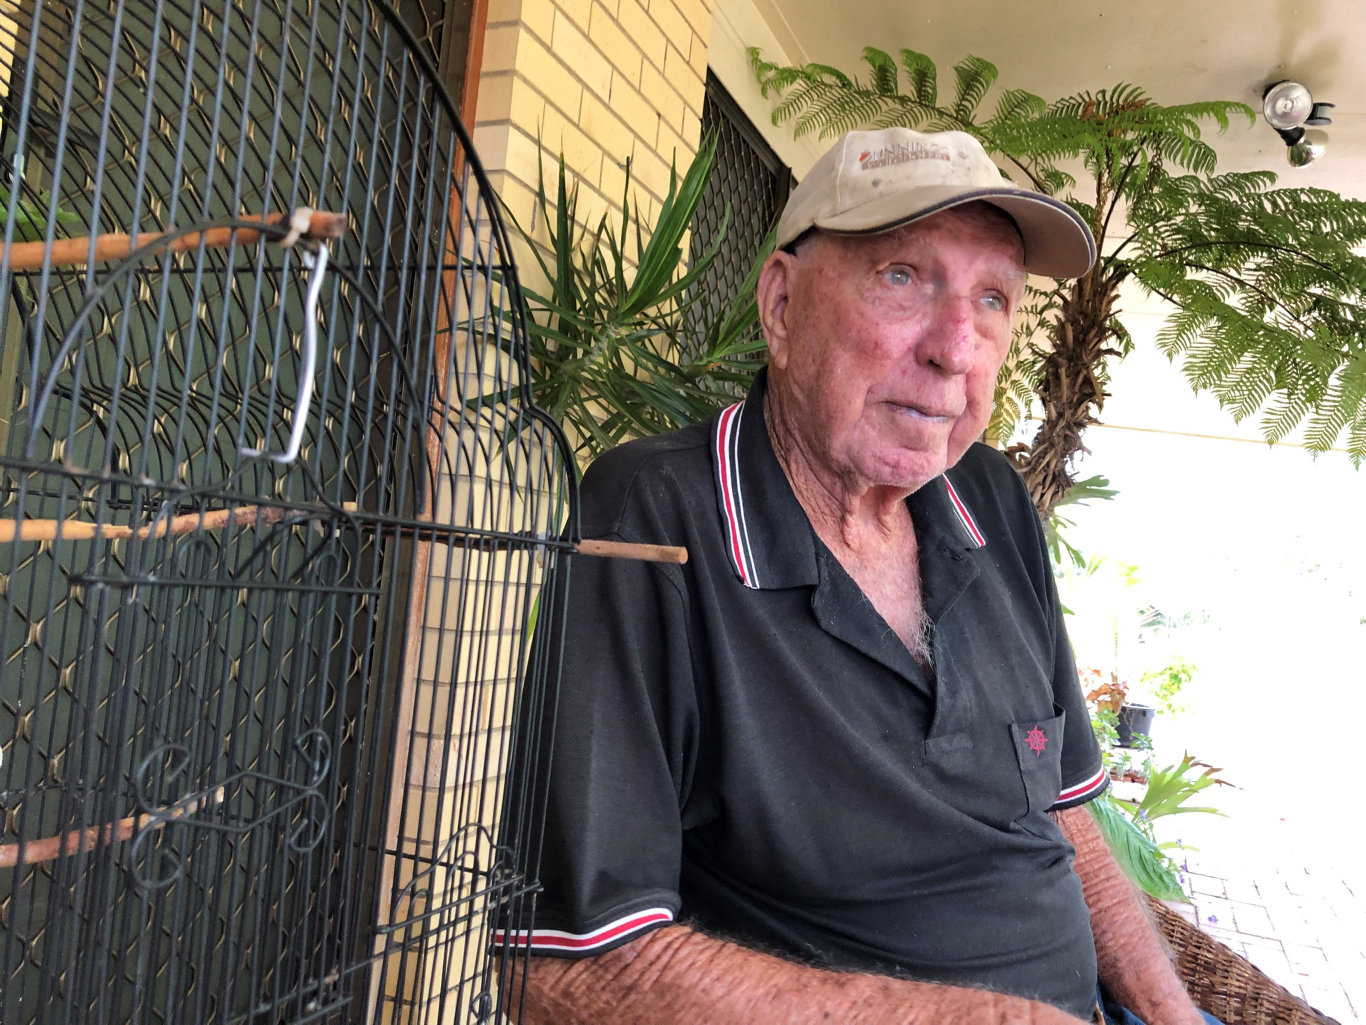 Hervey Bay's Aubrey McMullen with his bird's cage. His bird, named Ben, was killed during a dog attack.